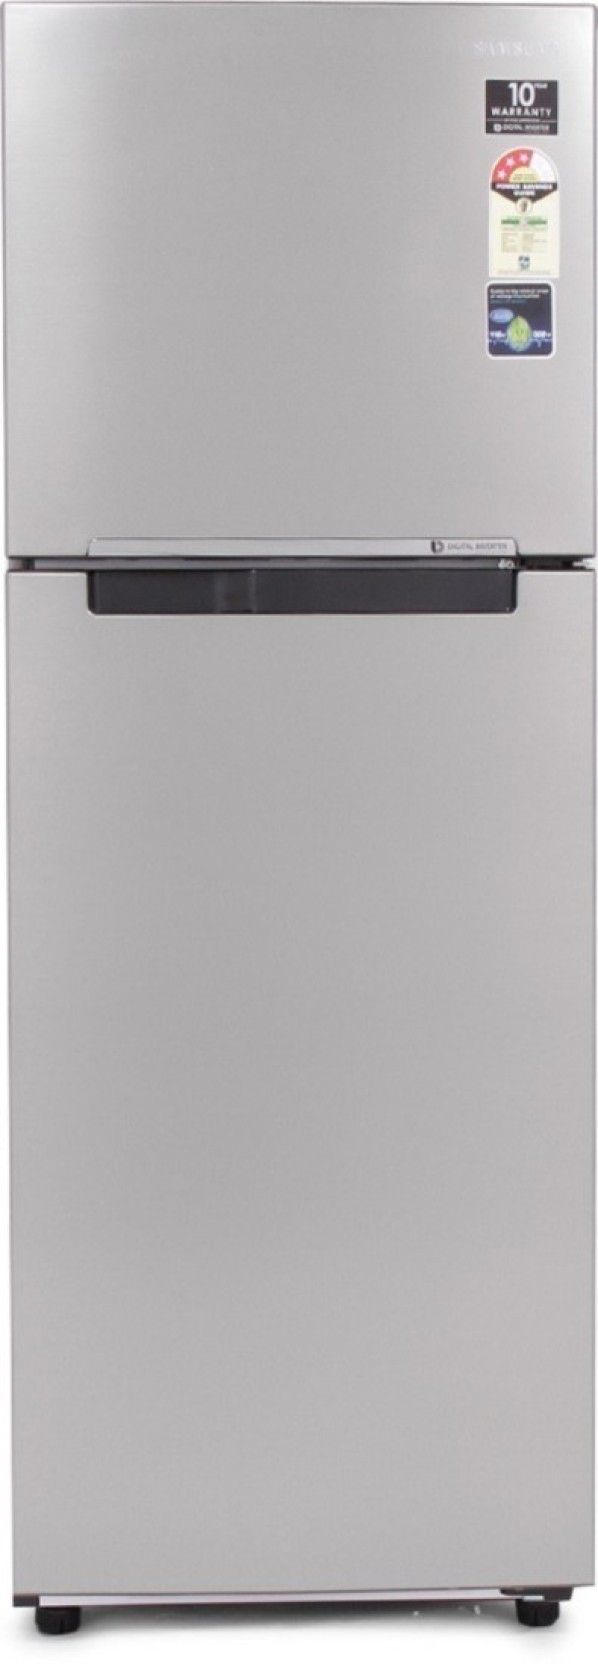 98ddc5ea667 Samsung 251 L Frost Free Double Door 3 Star Refrigerator Online at ...